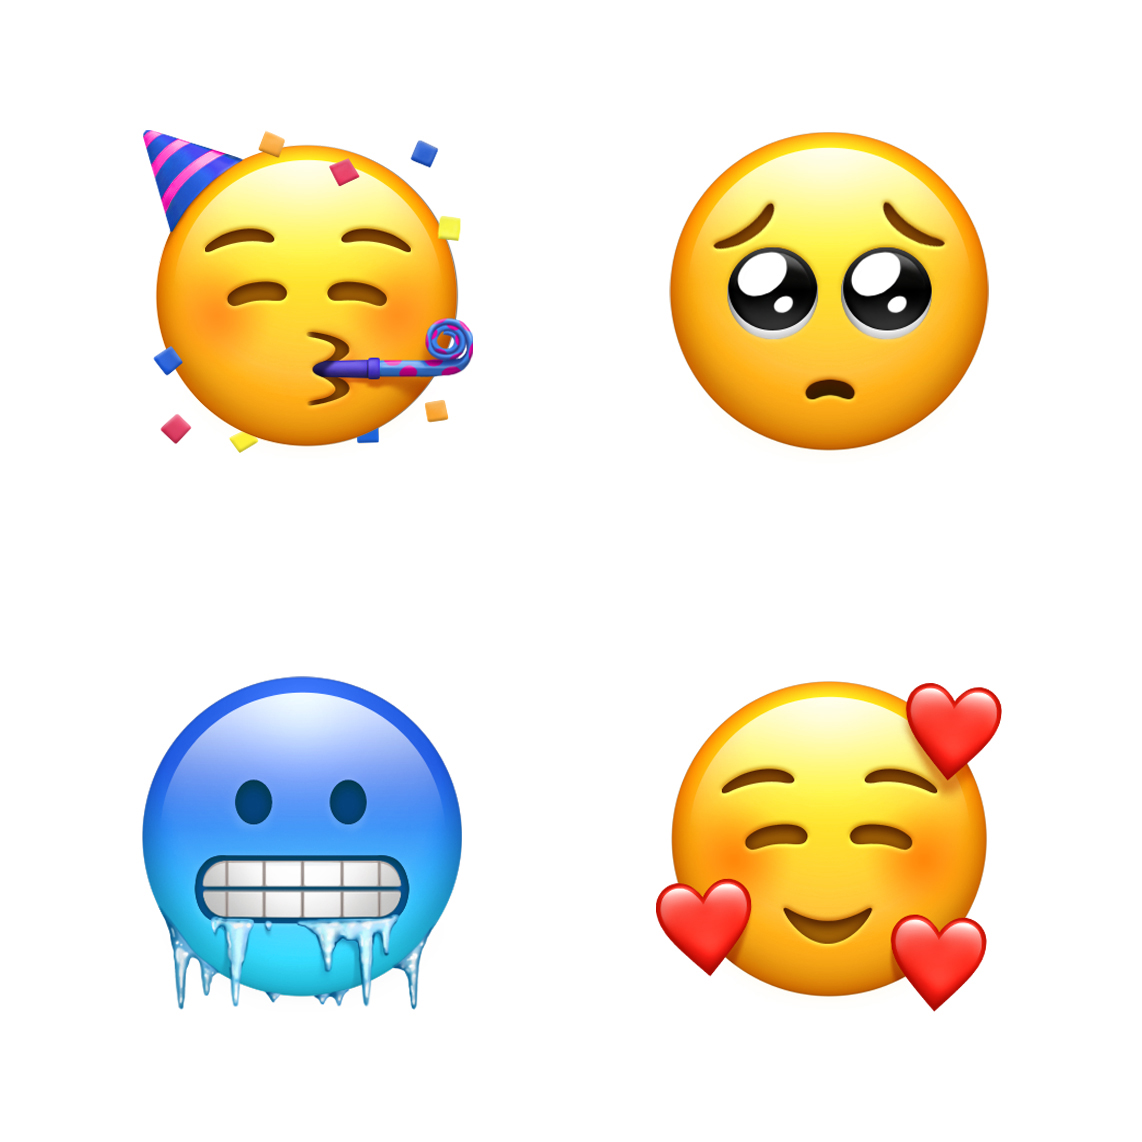 Apple announces 70 new emojis coming soon on World Emoji Day, July 17, 2018.